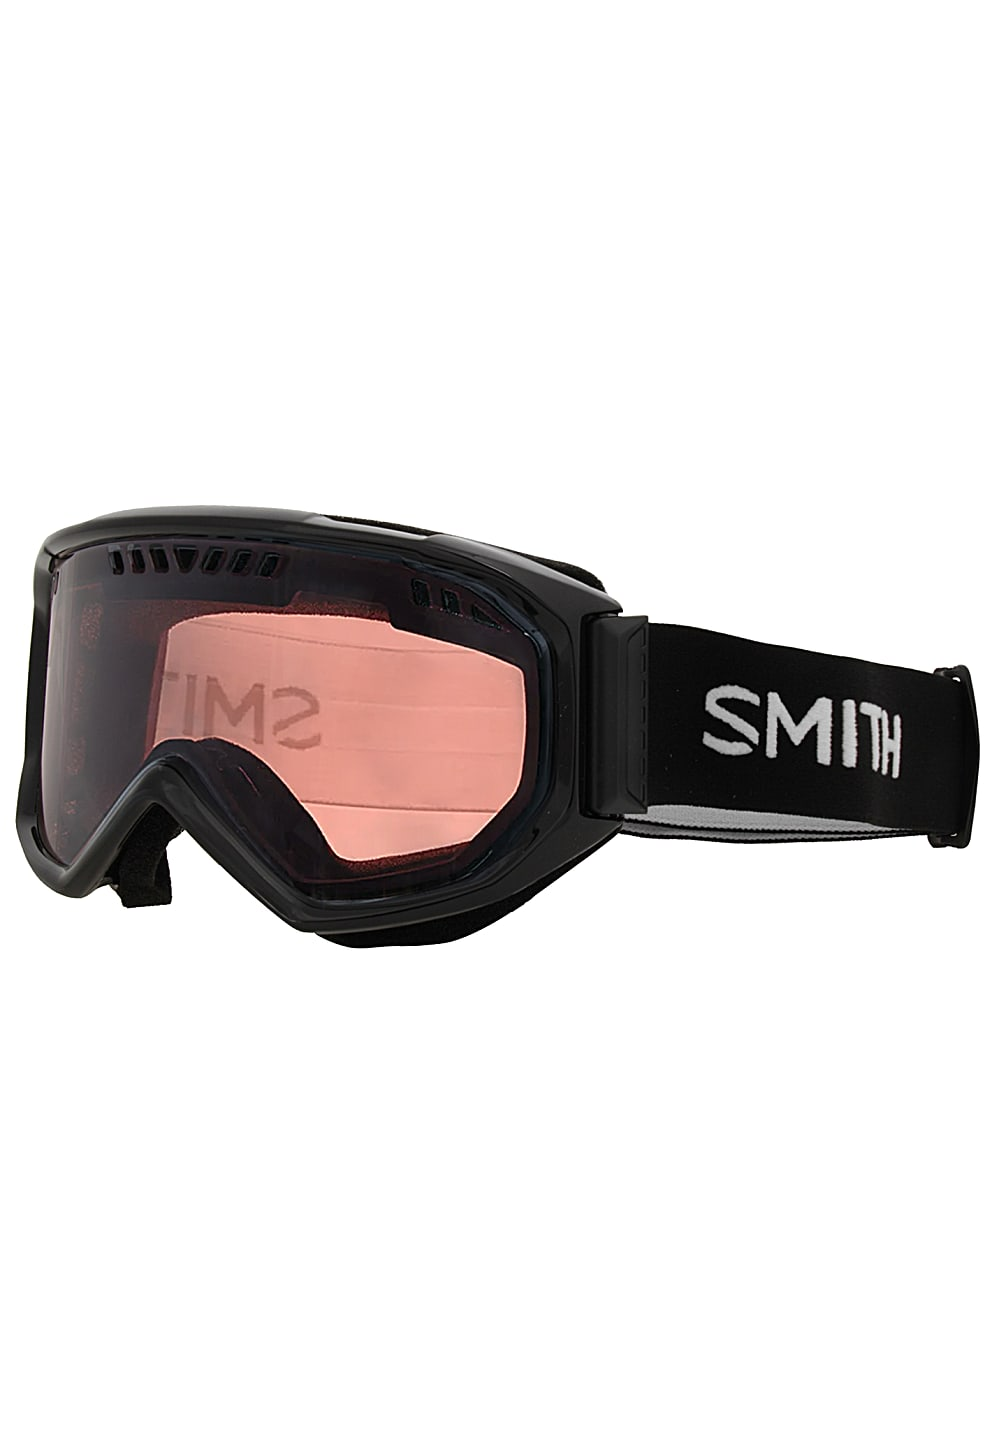 Smith Scope Pro Snowboardbrille - Schwarz - OneSize